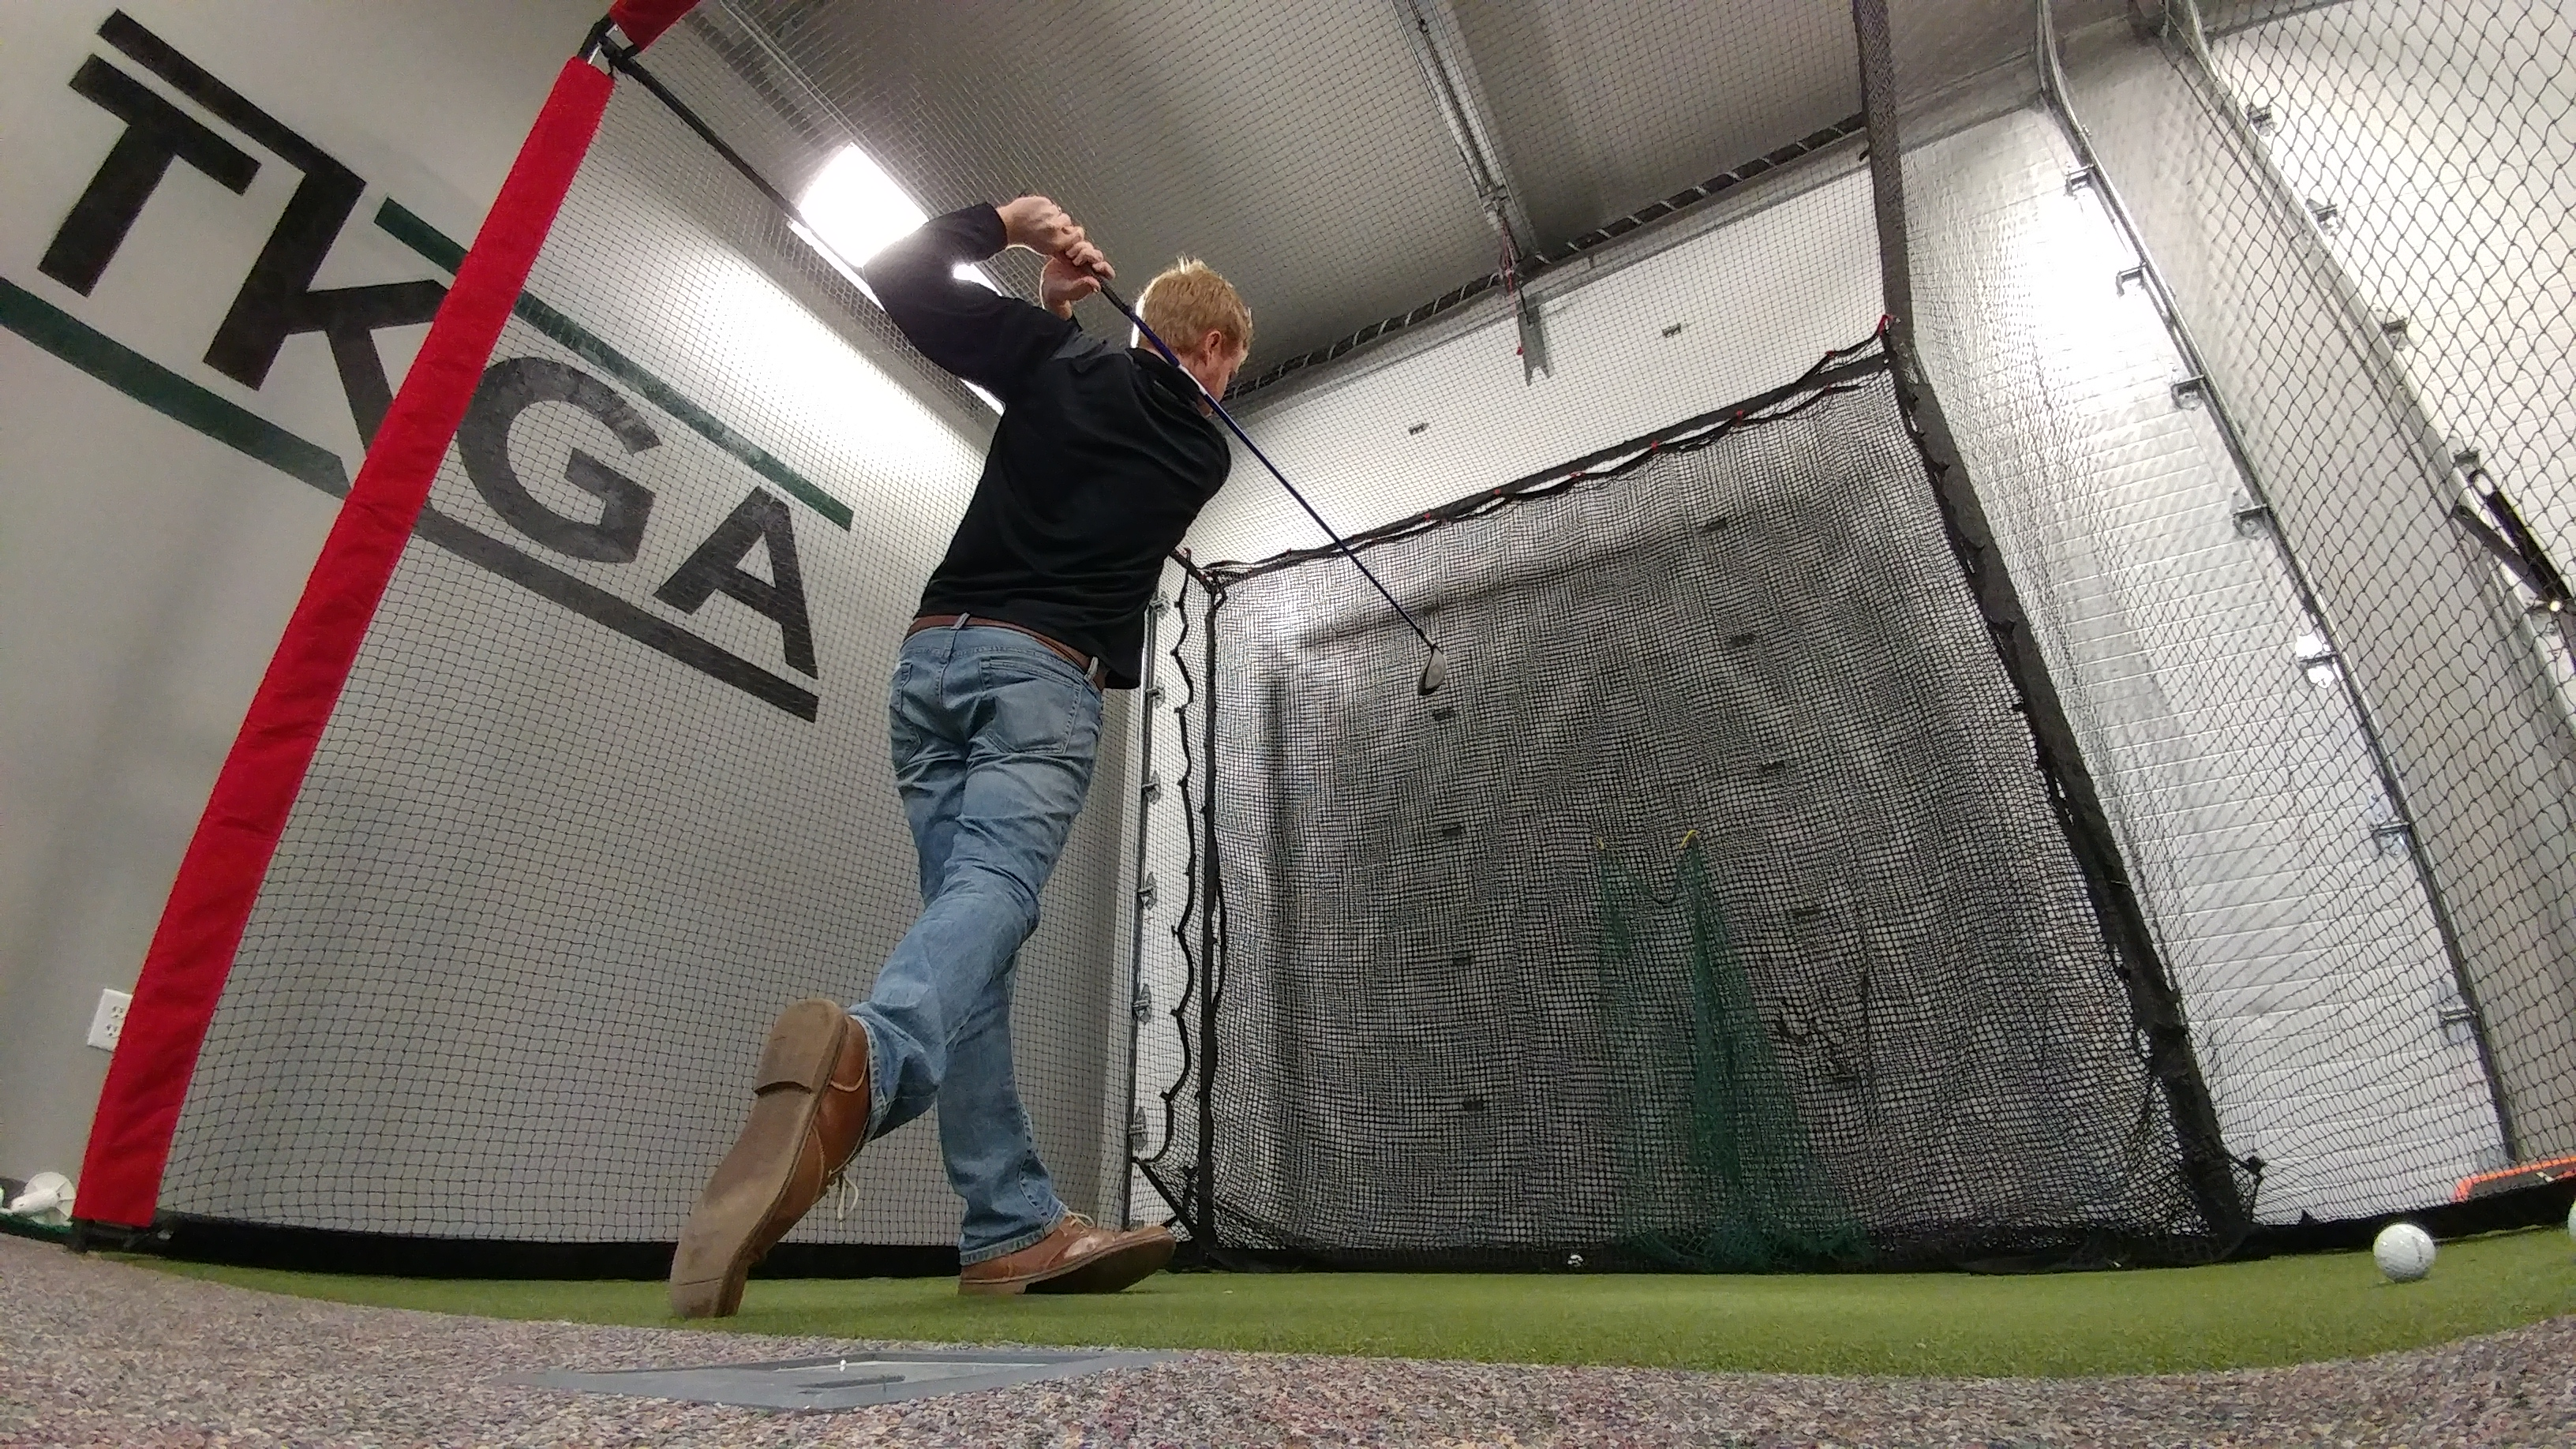 Golfing indoors with a net is not the only option to golf indoors